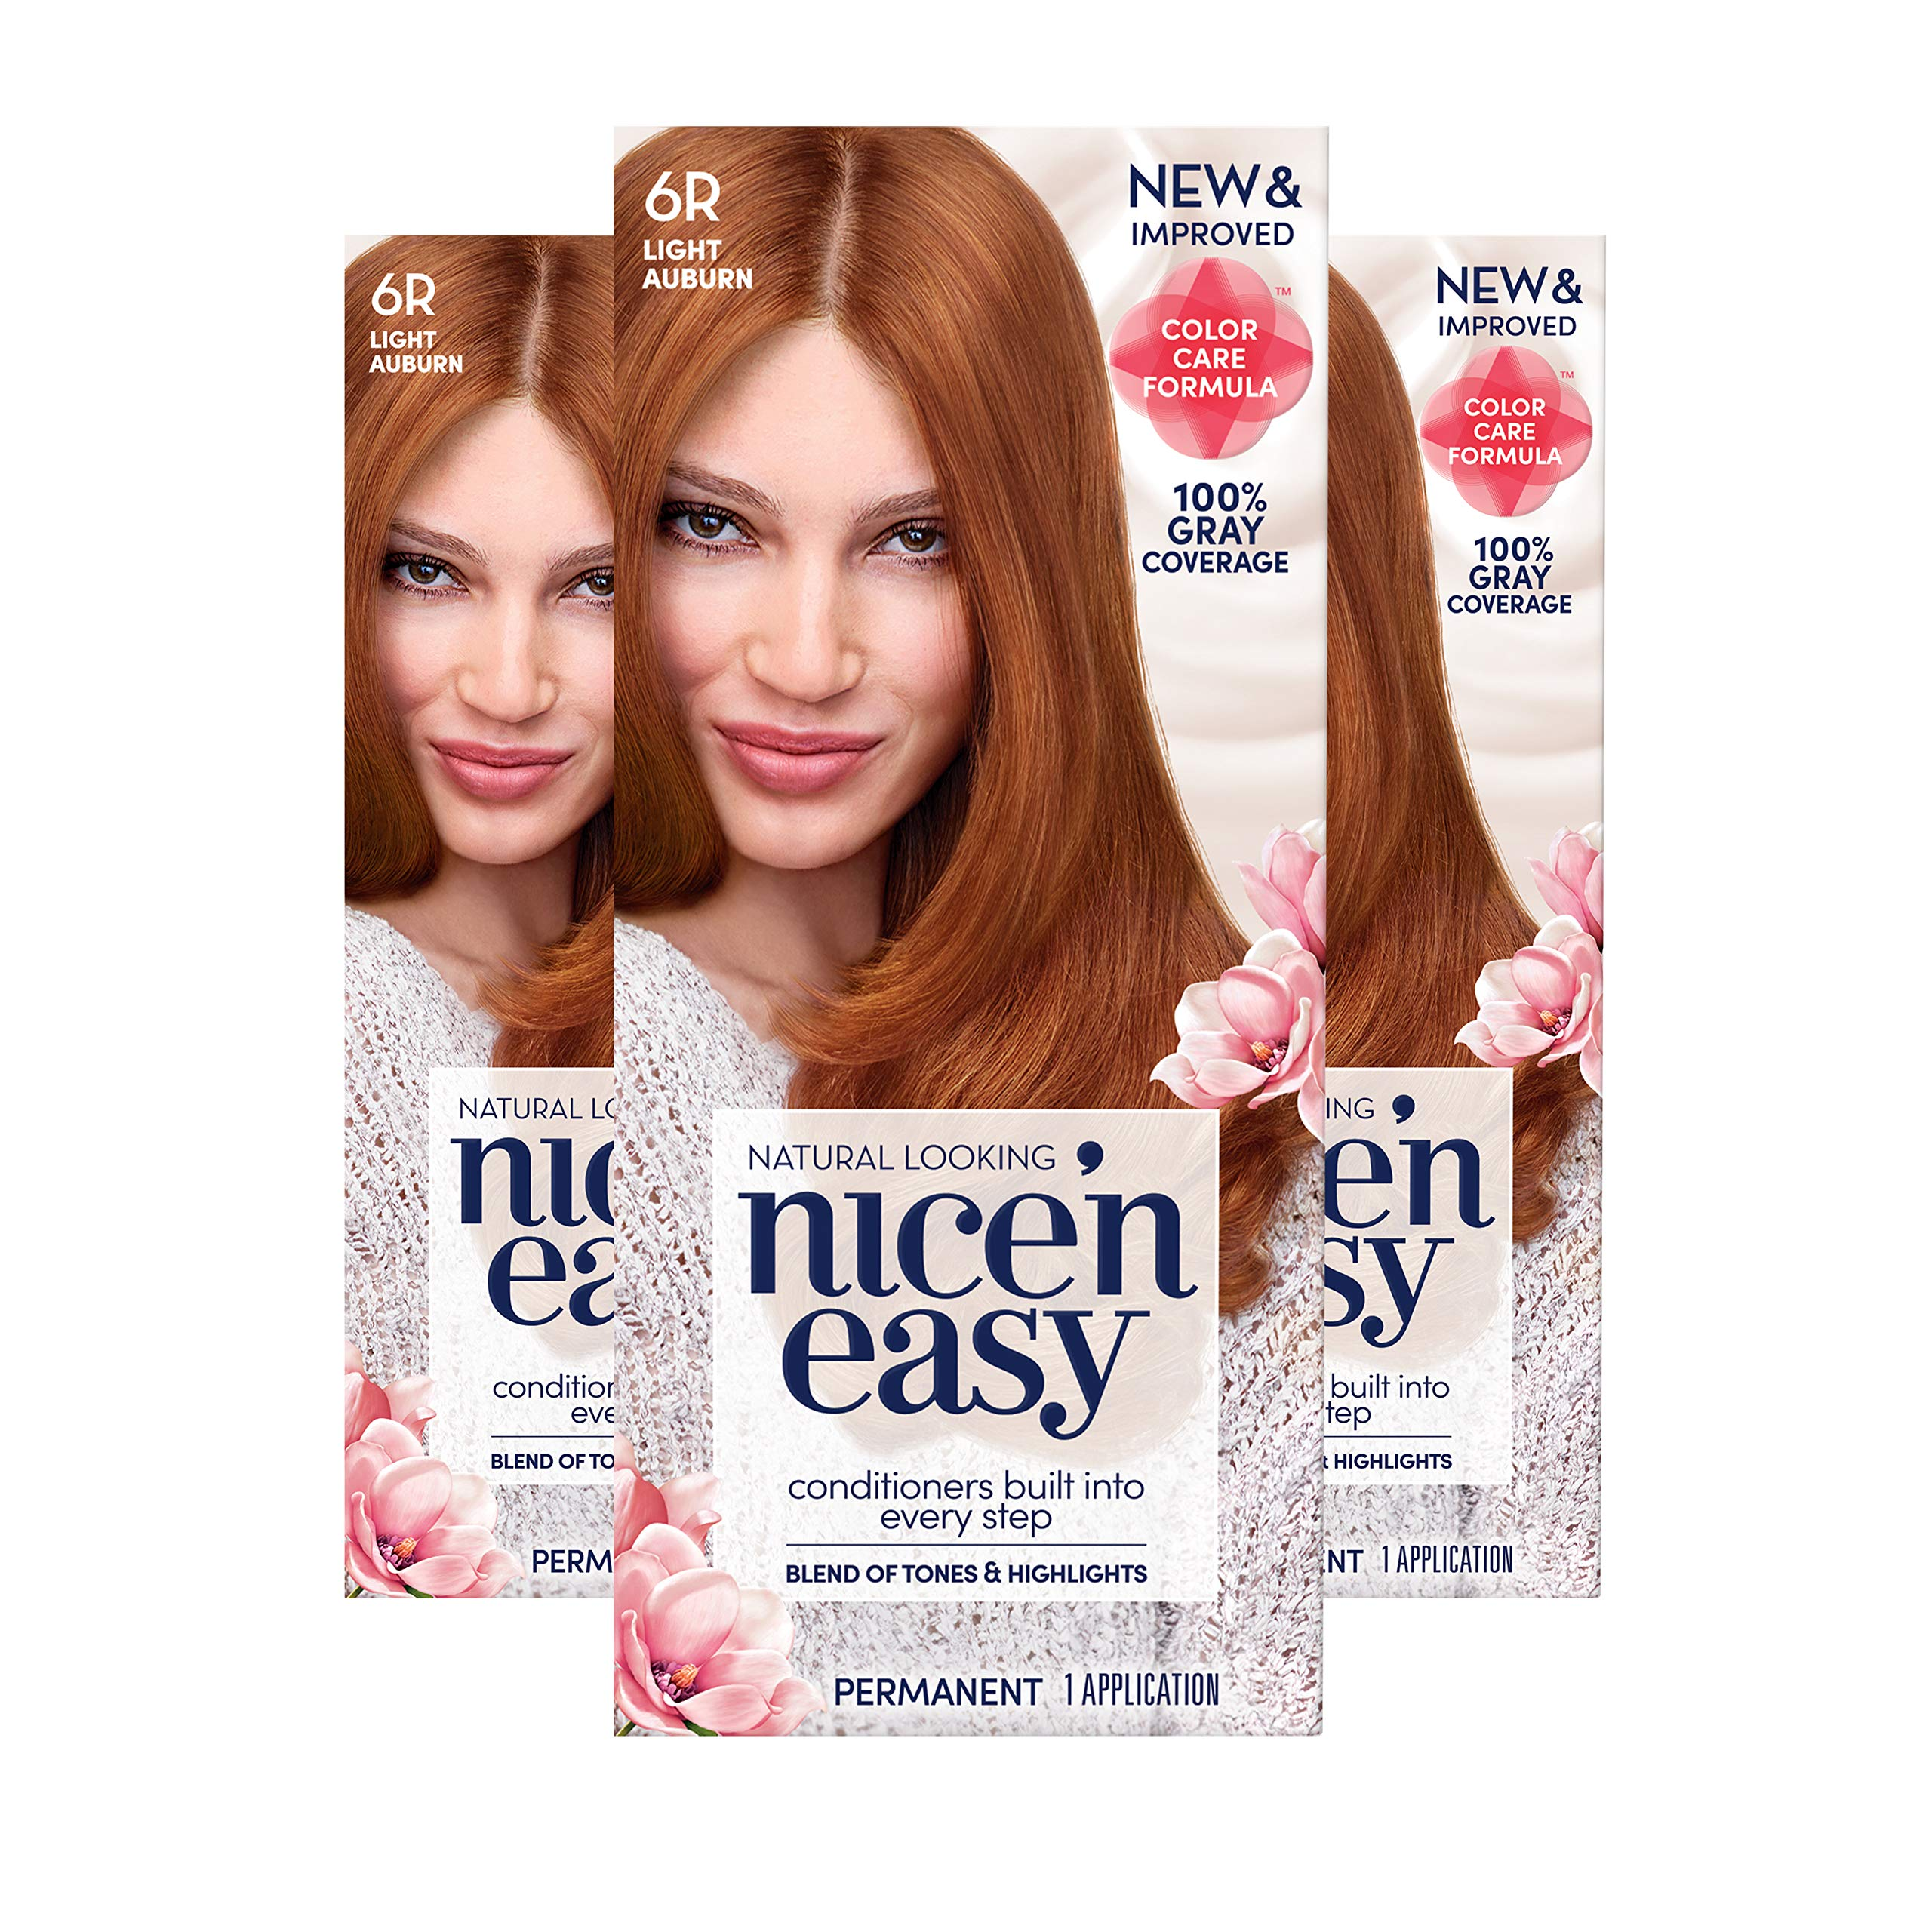 Clairol Nice 'n Easy Permanent Hair Color, 6R Light Auburn, 3 Count (Packaging May Vary) by Clairol